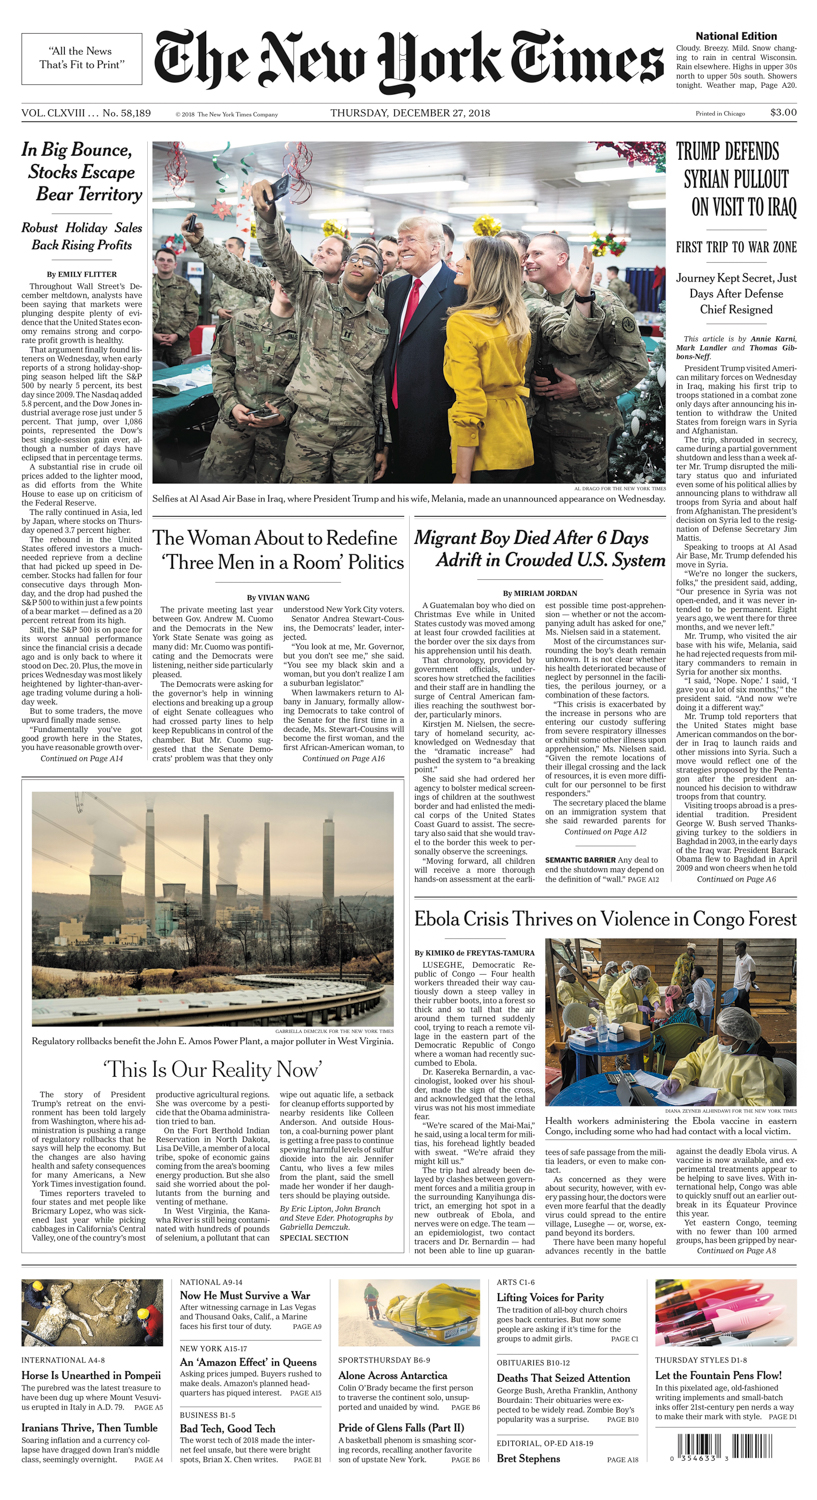 Diana Zeyneb Alhindawi_2018_12_28_New York Times national edition_page A1_ebola congo drc_lower res.jpg